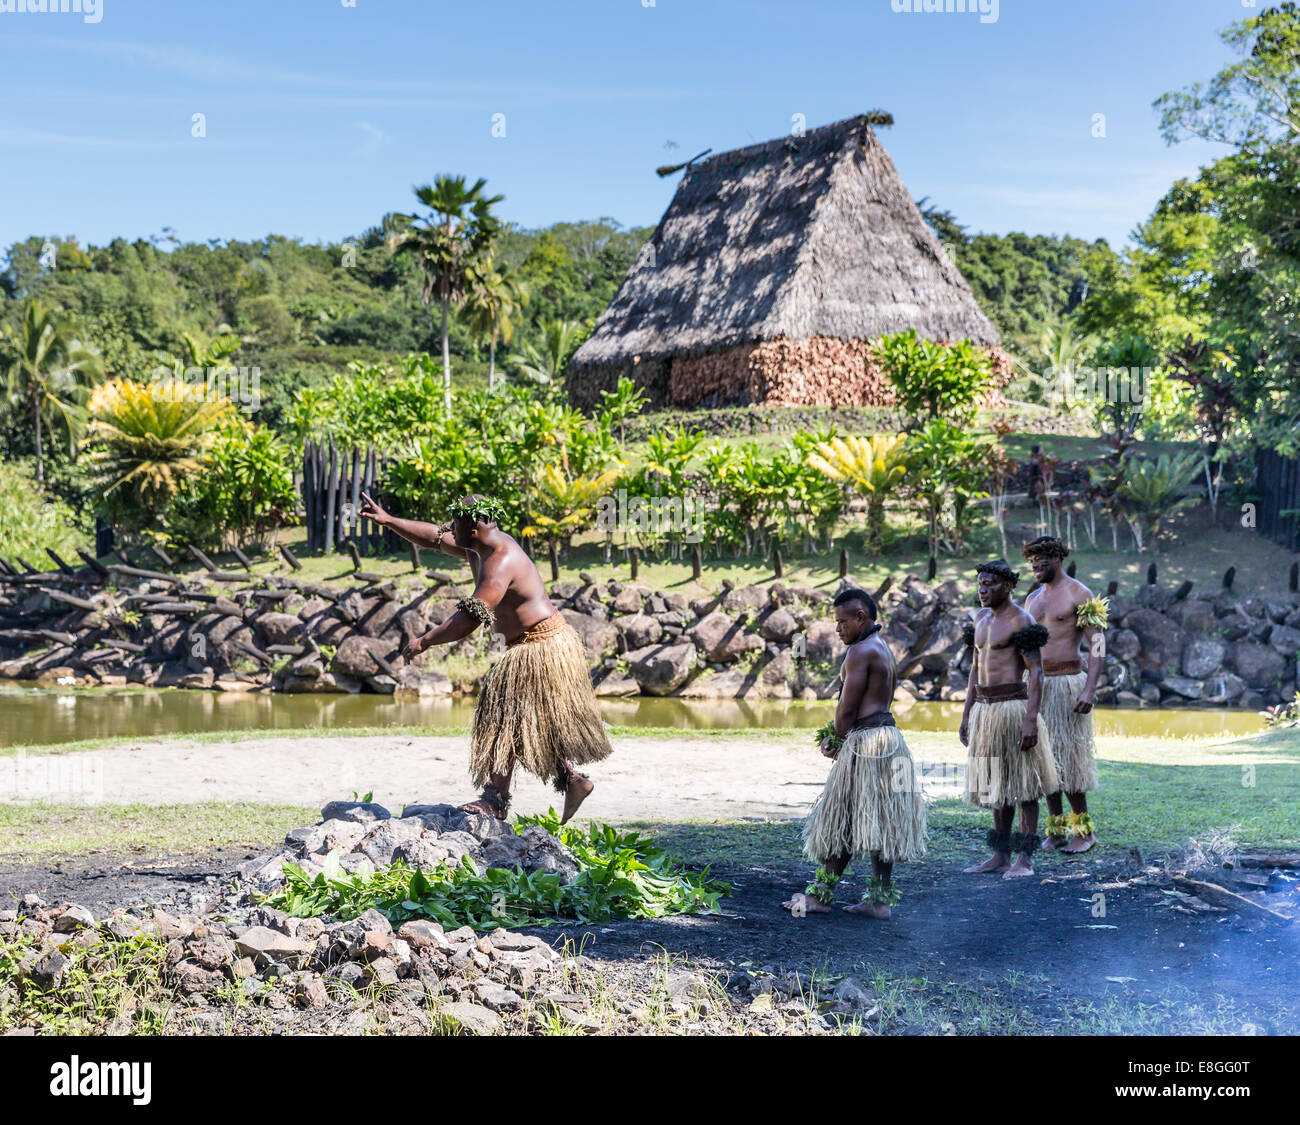 Ceremonial fire walkers crossing hot rocks at Fiji - Stock Image